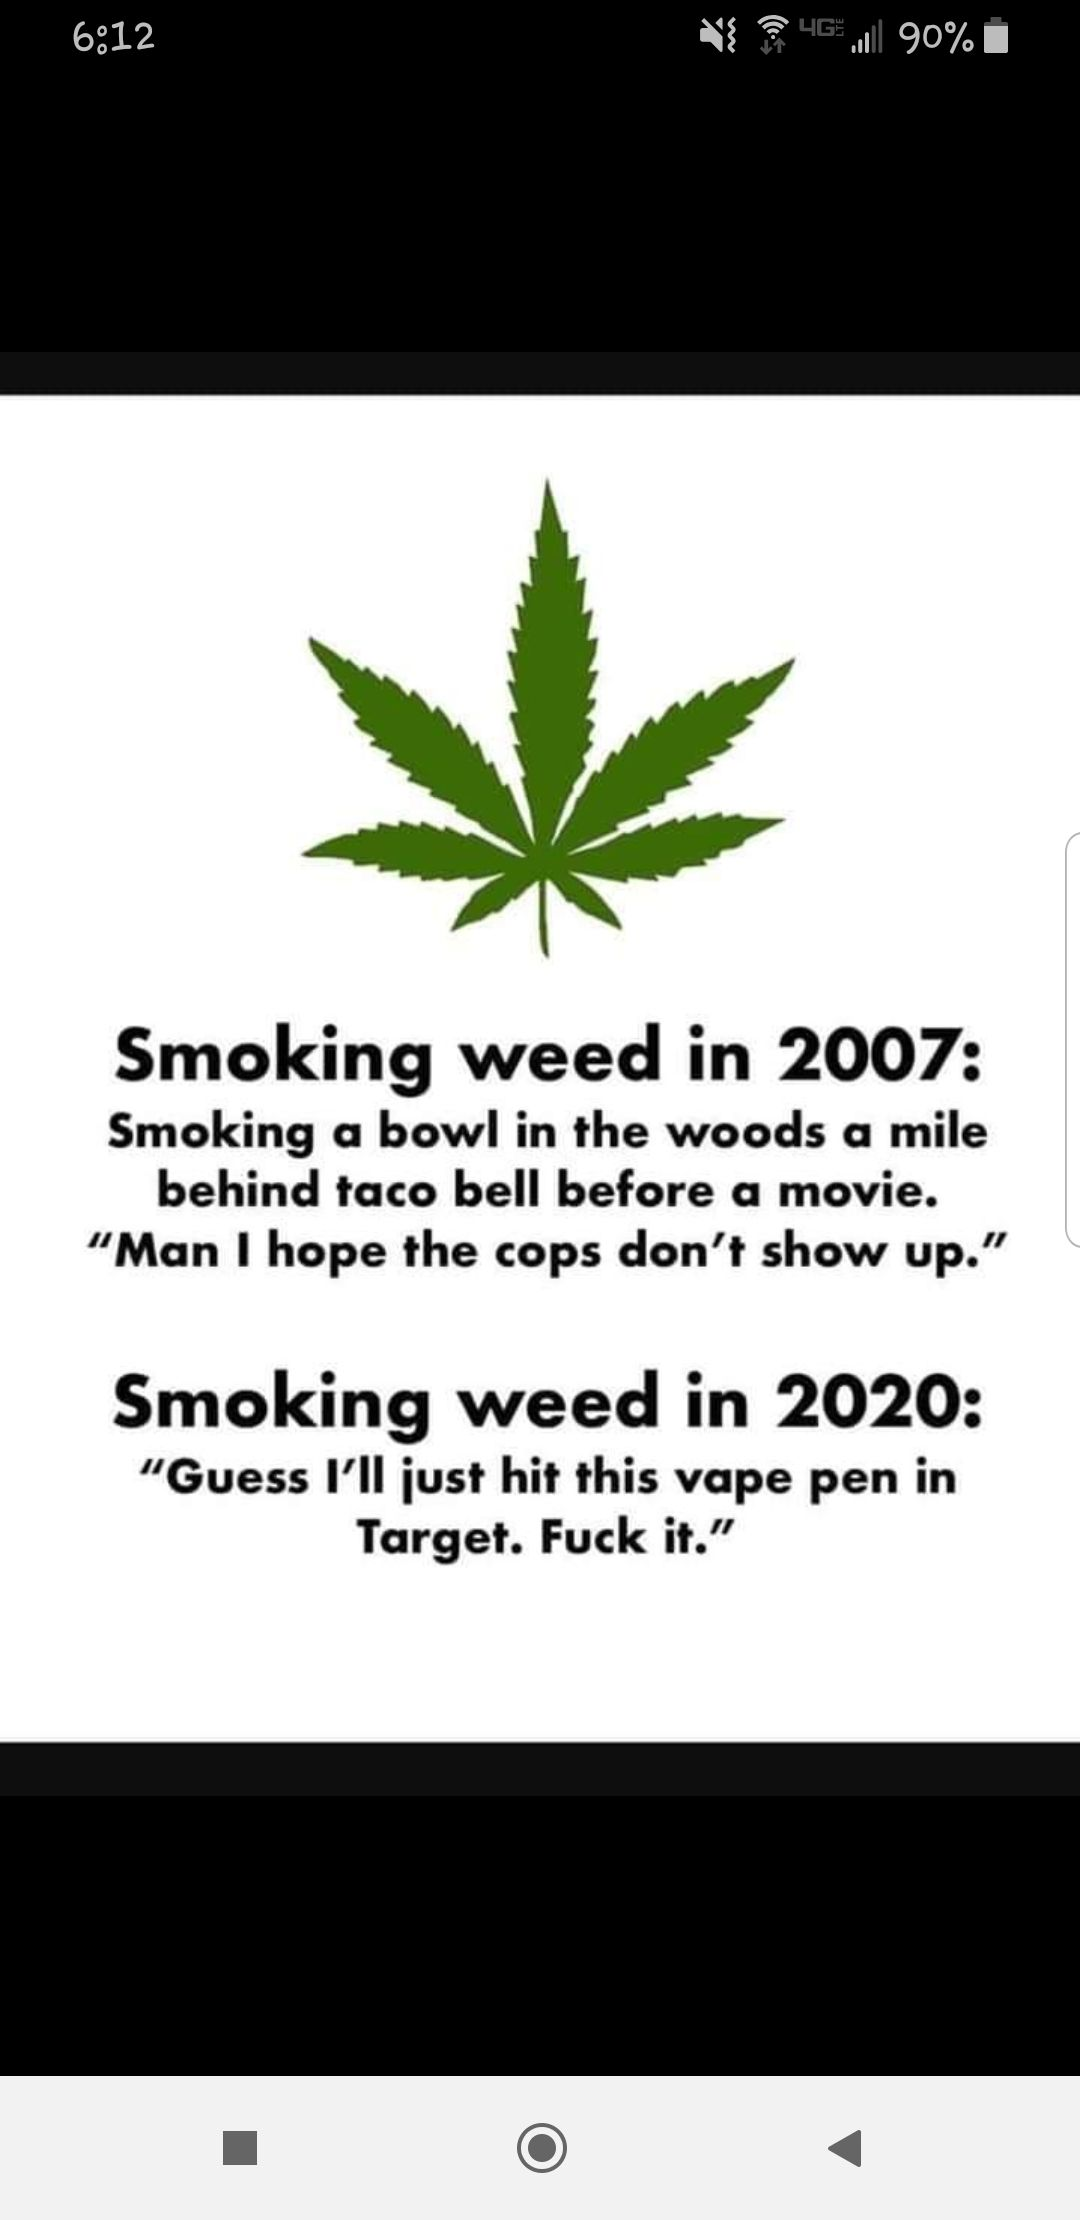 HIGH TIMES things changed!